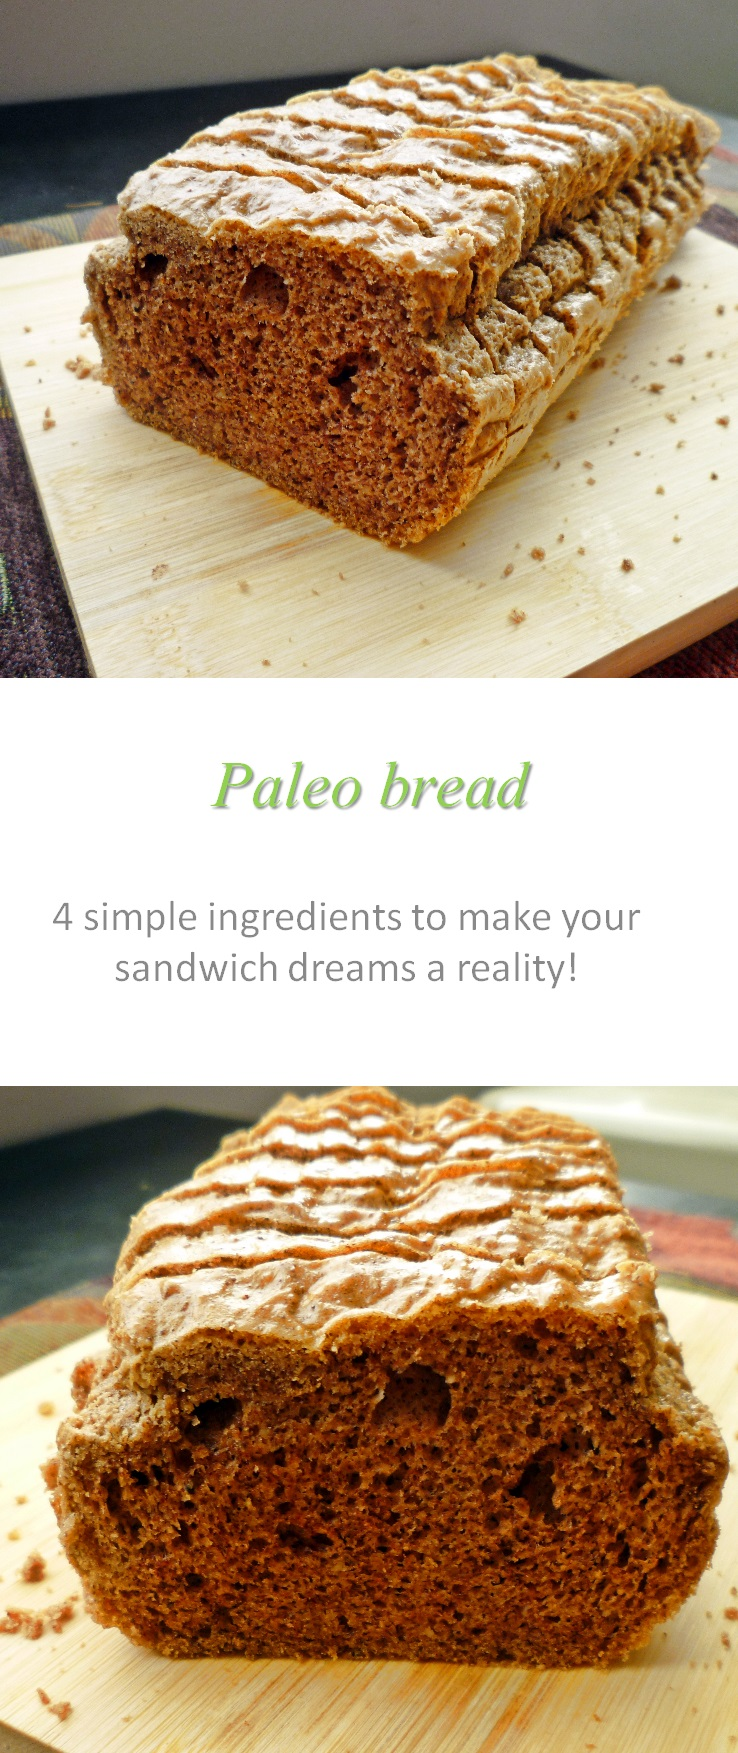 Whoever knew that Paleo bread could be so easy to make?  And so versatile for sandwiches, soups, toast ...? Just 4 simple ingredients and you're all set! #paleo